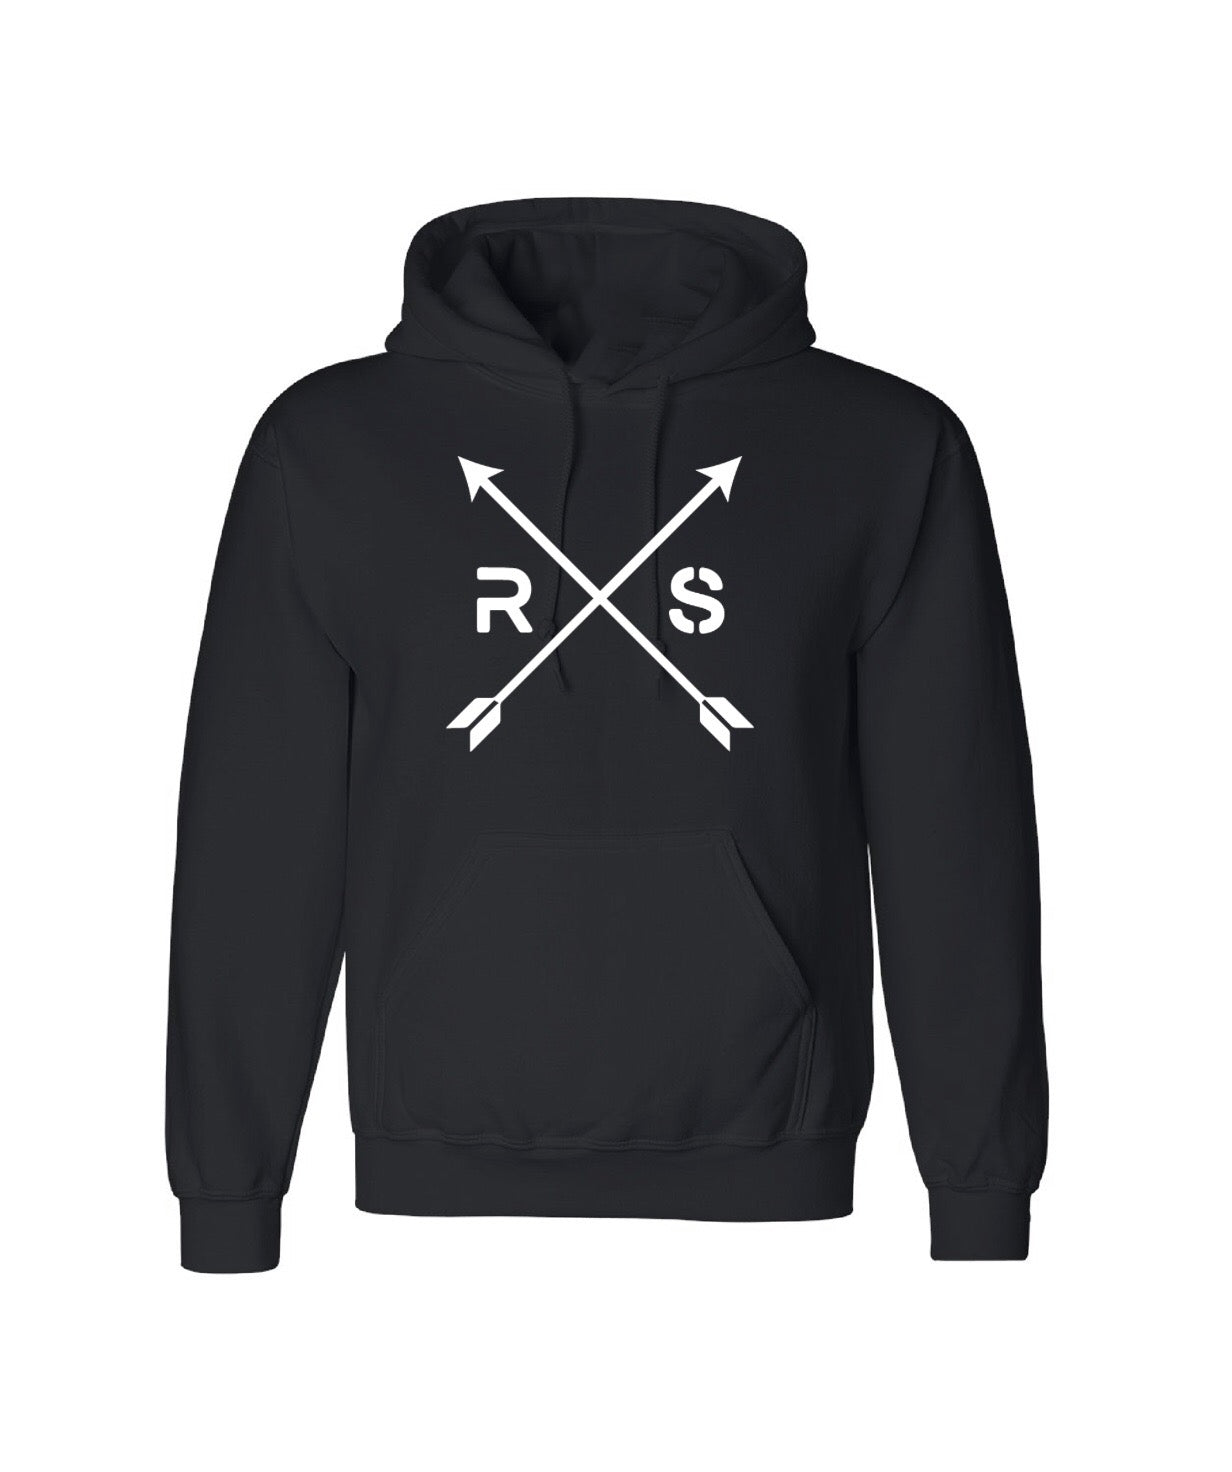 Arrow RS Hooded Sweatshirt